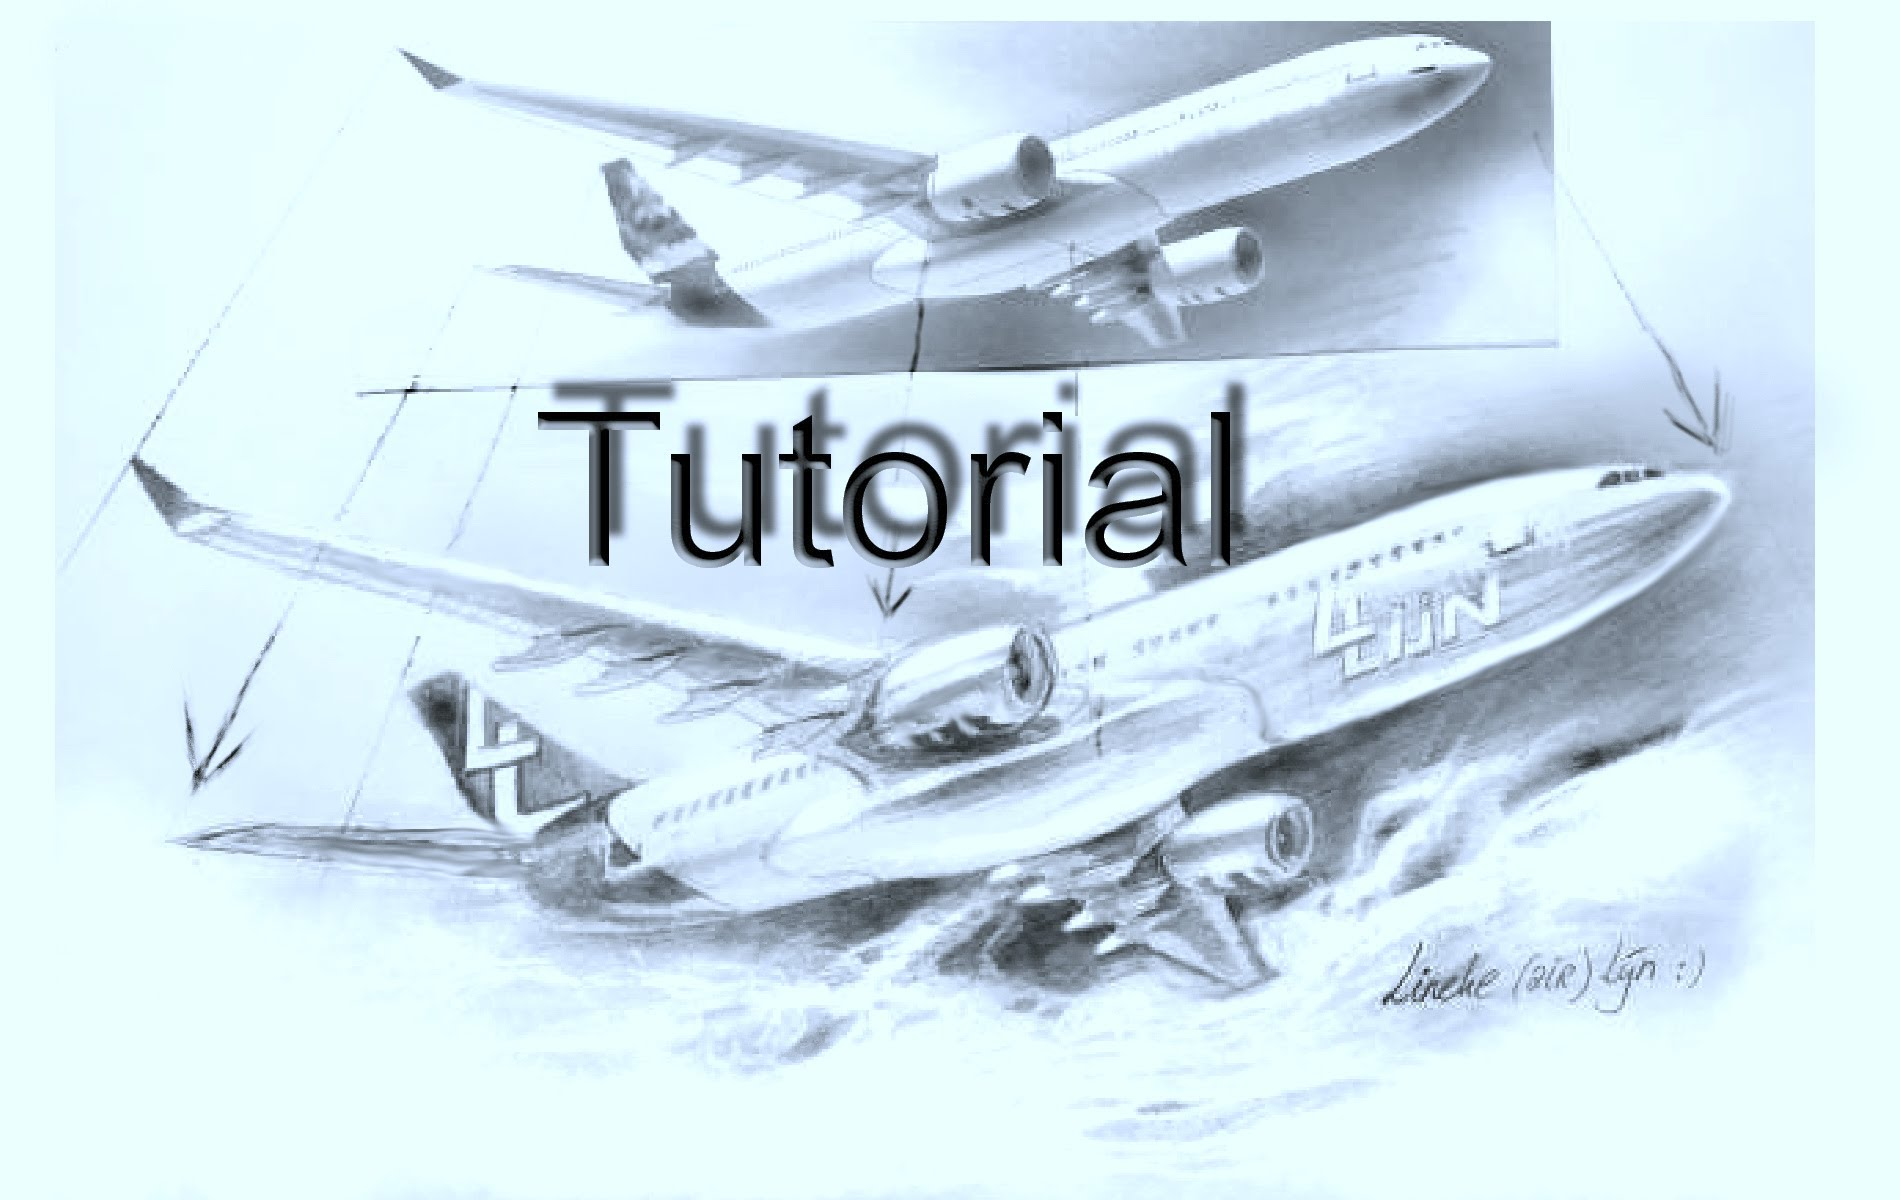 Drawn airplane realistic #2